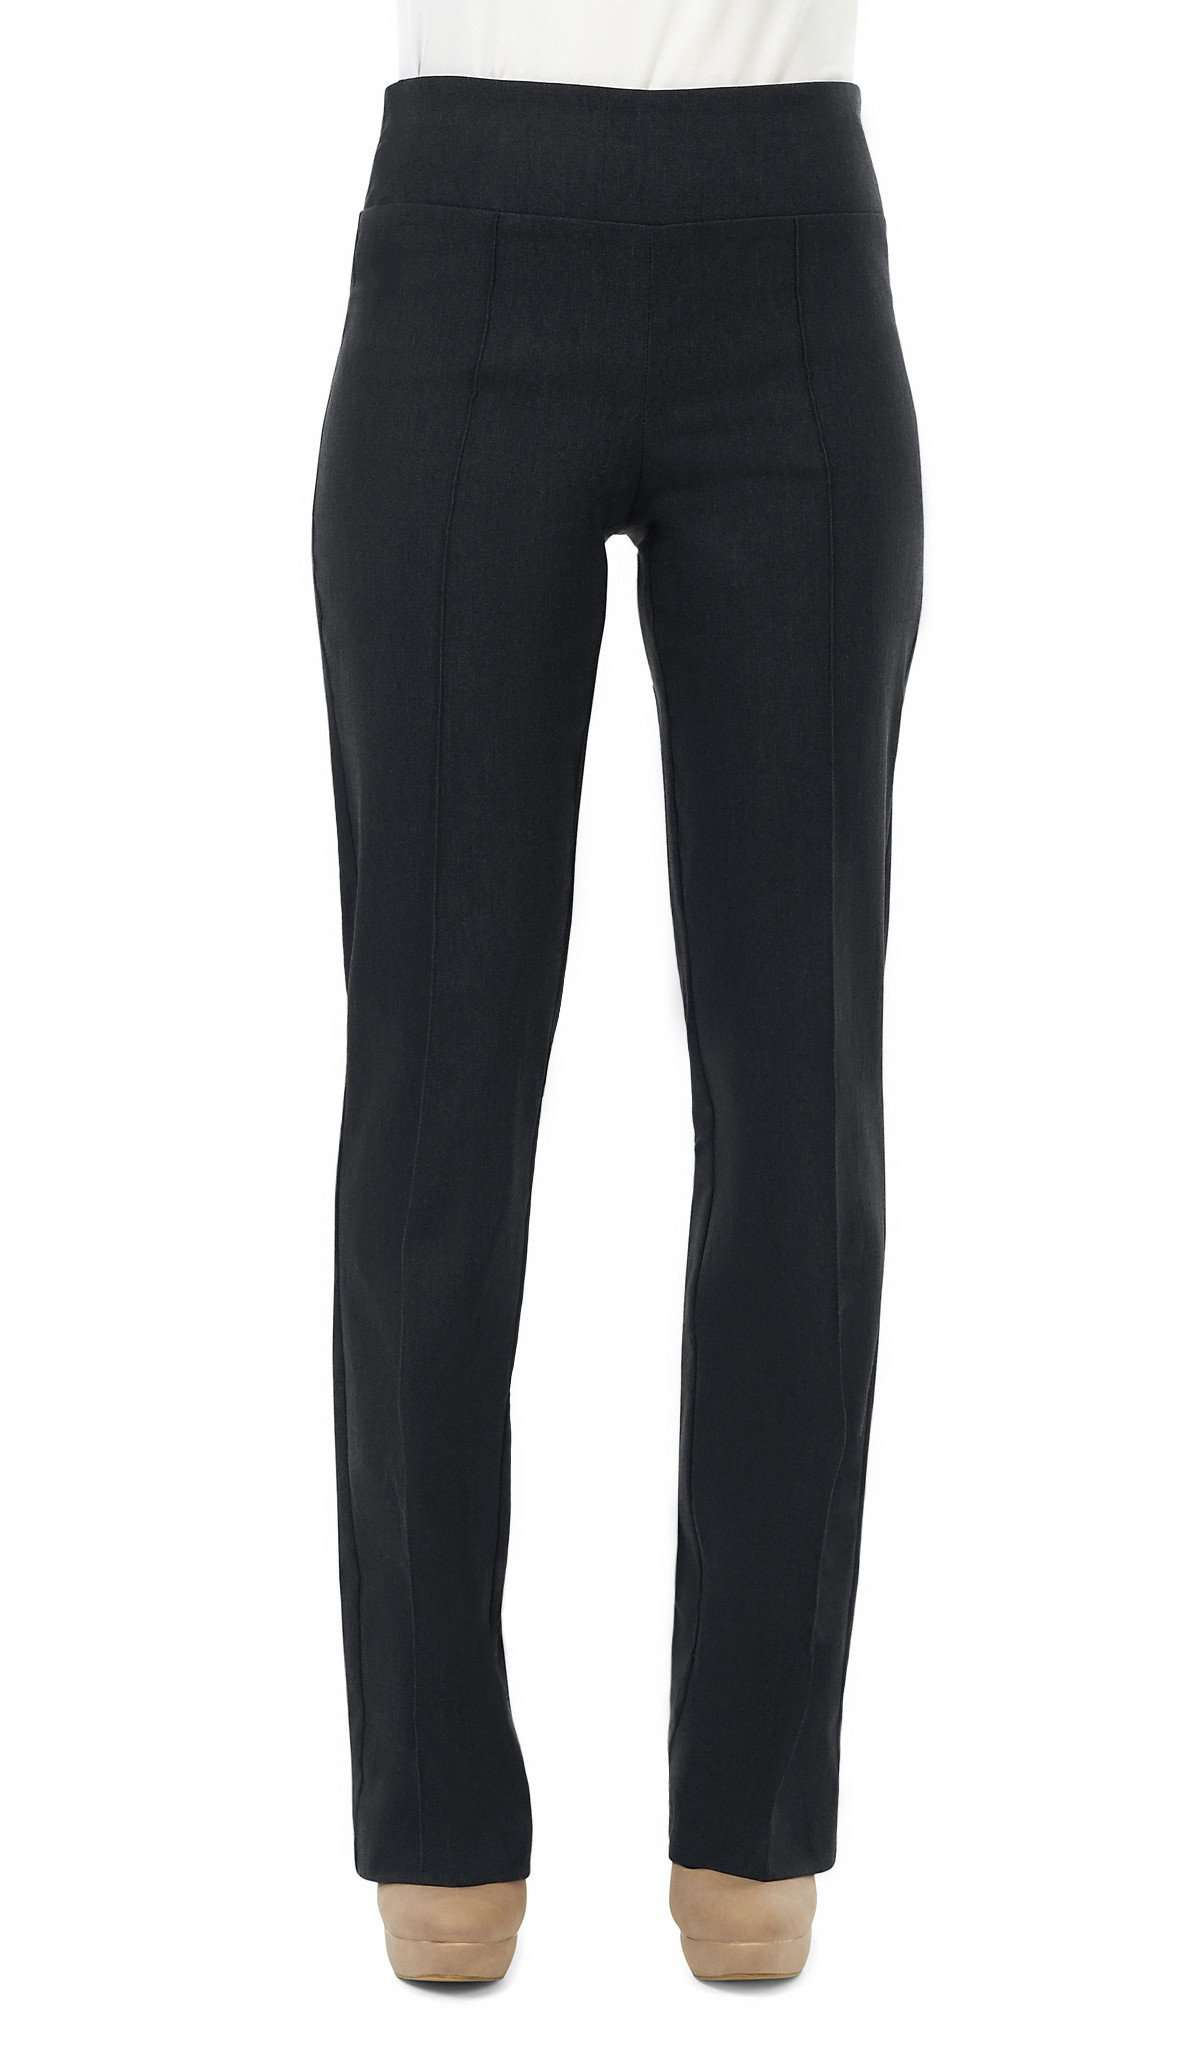 Miracle Pant in Denim heather Quality Stretch Fabric - Yvonne Marie